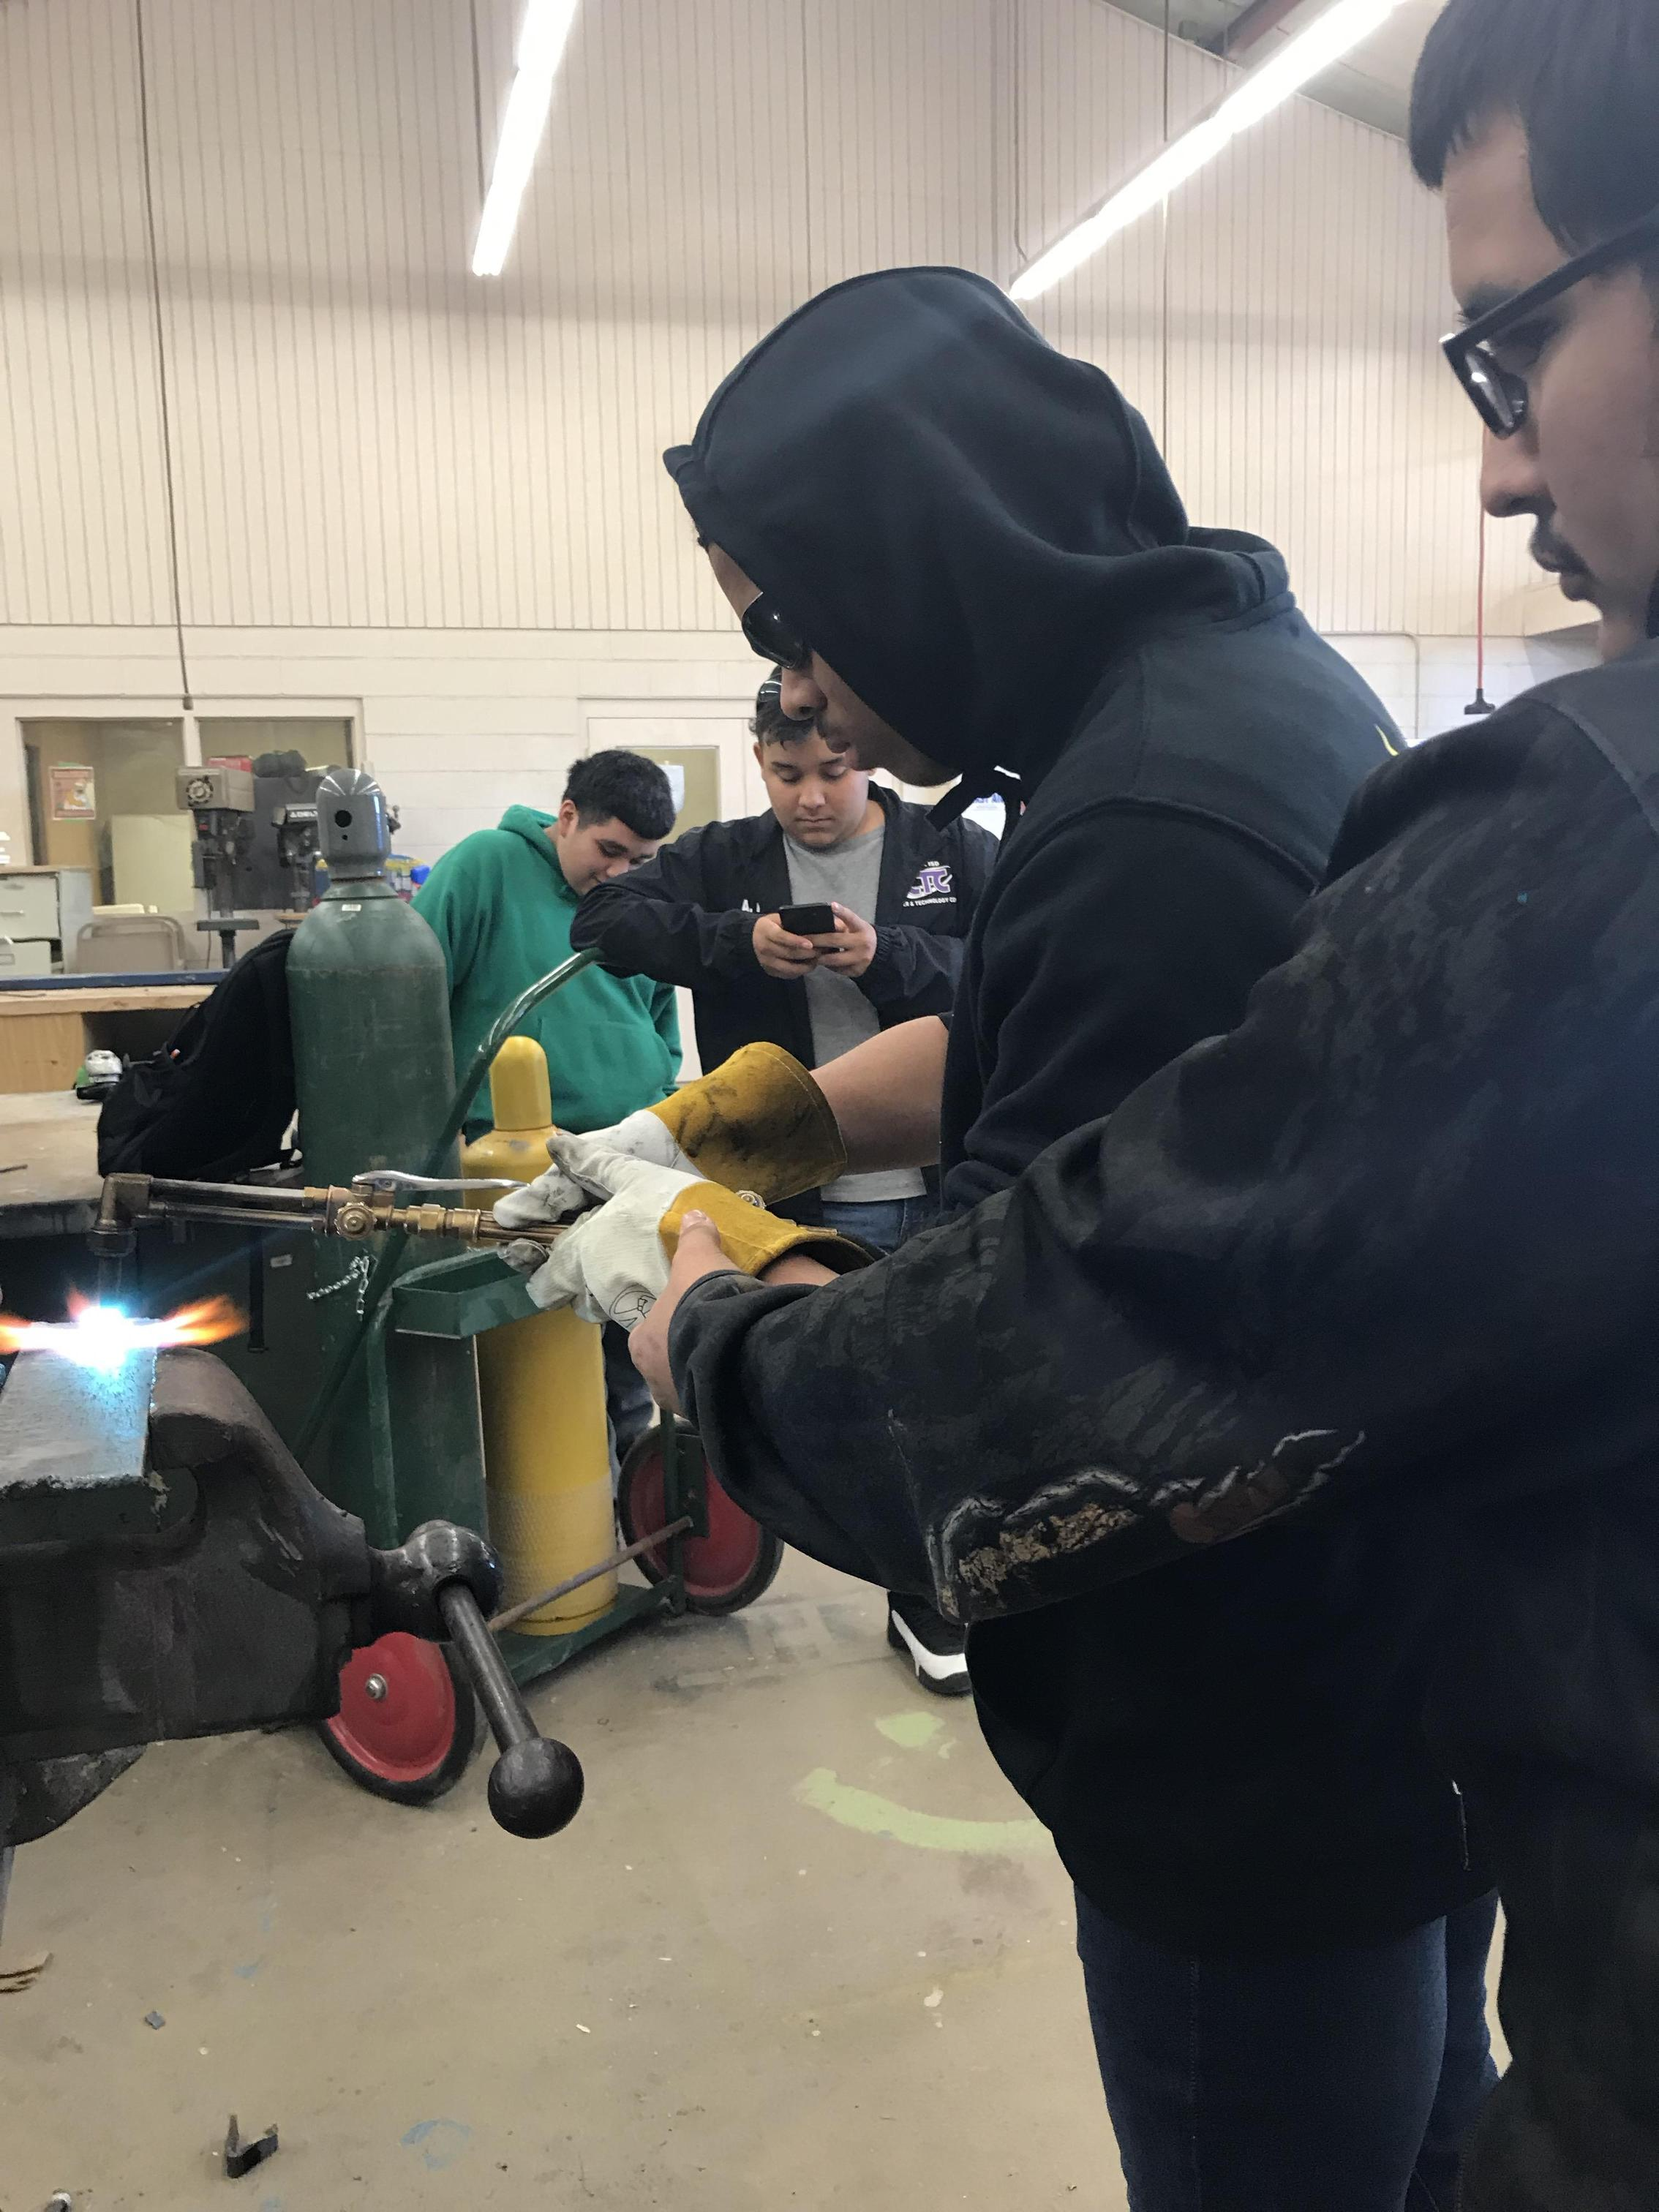 Using the cutting torch